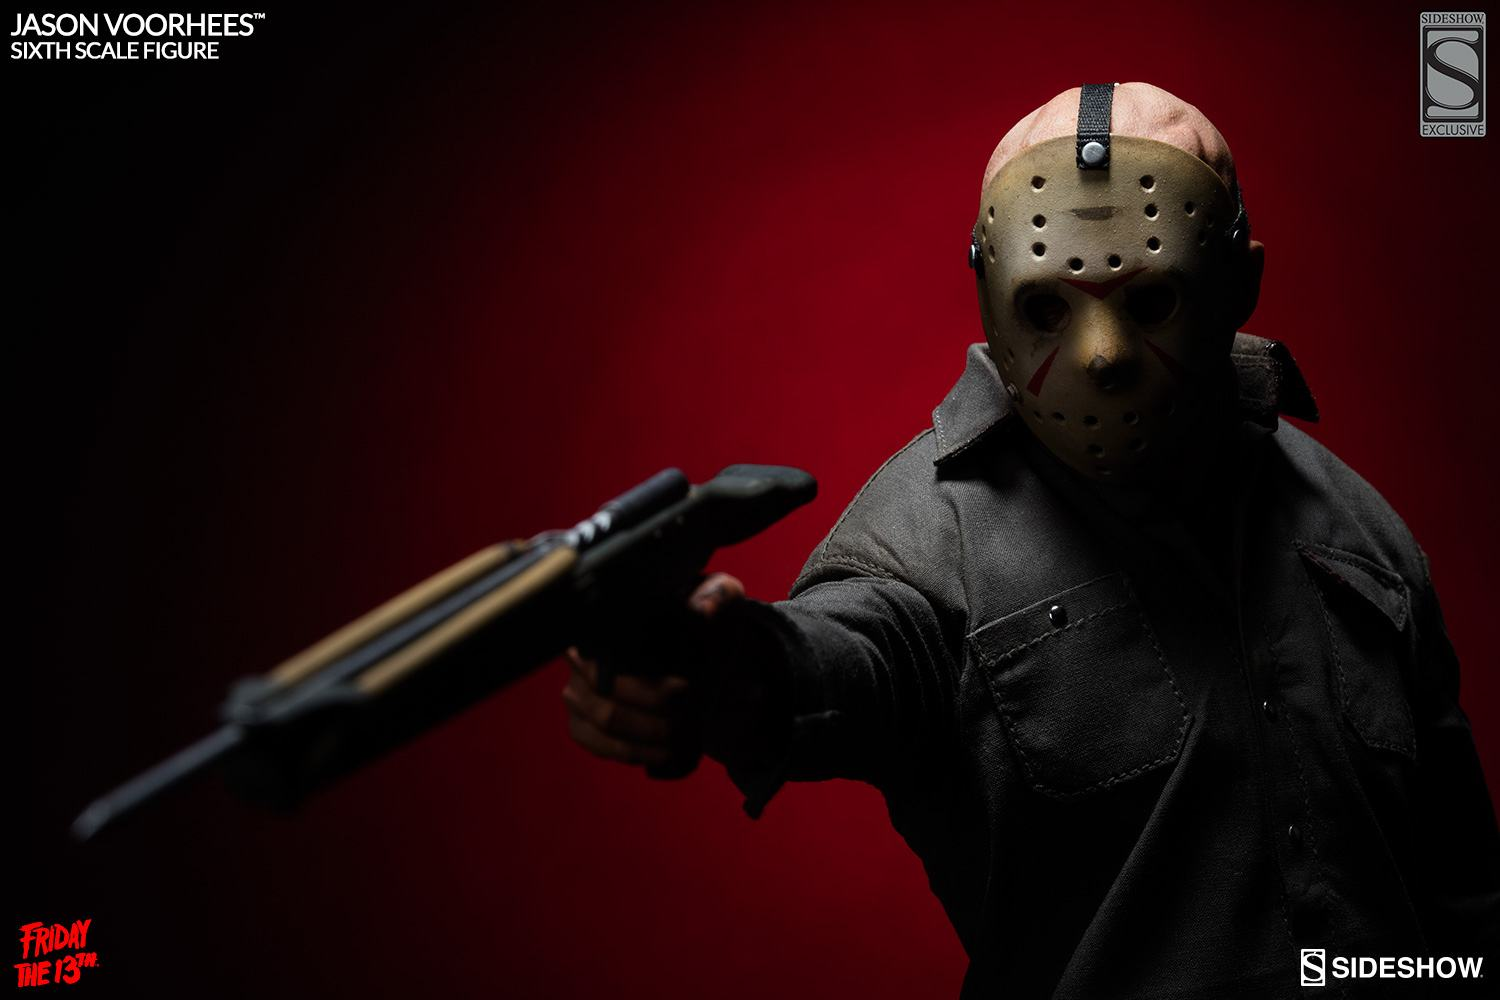 Jason-Voorhees-Friday-the-13th-Pt-III-Sixth-Scale-Action-Figure-02